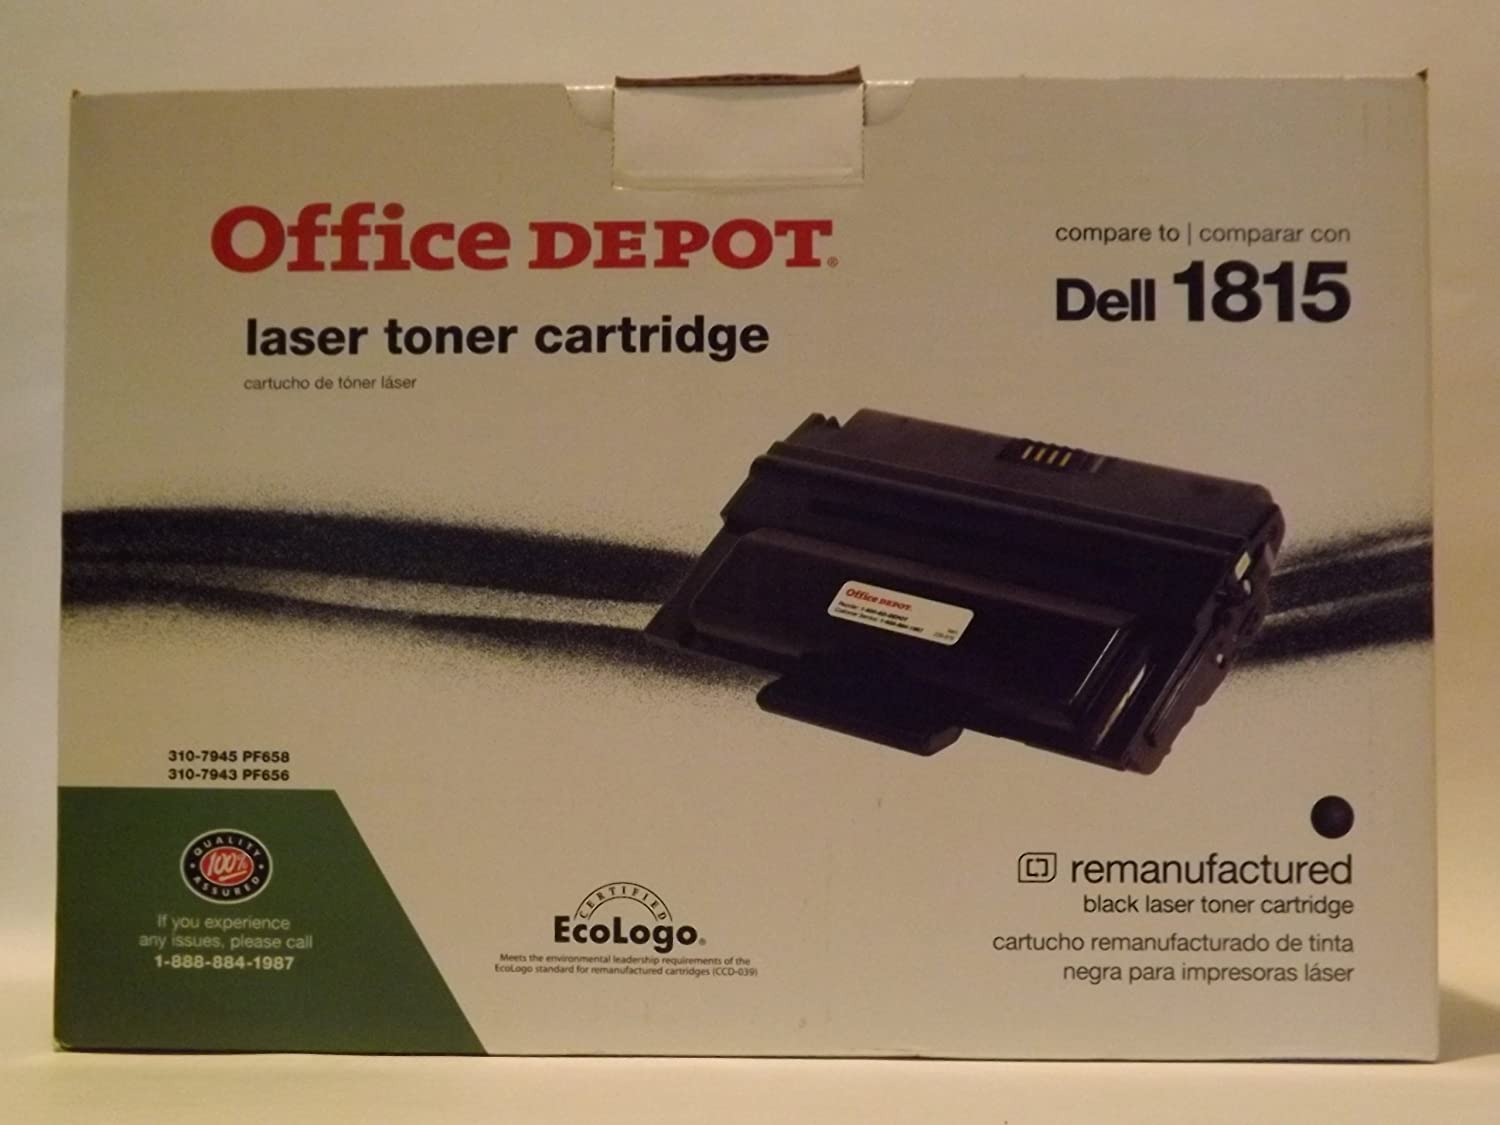 Amazon.com: Office Depot Remanufactured Black Laser Toner ...